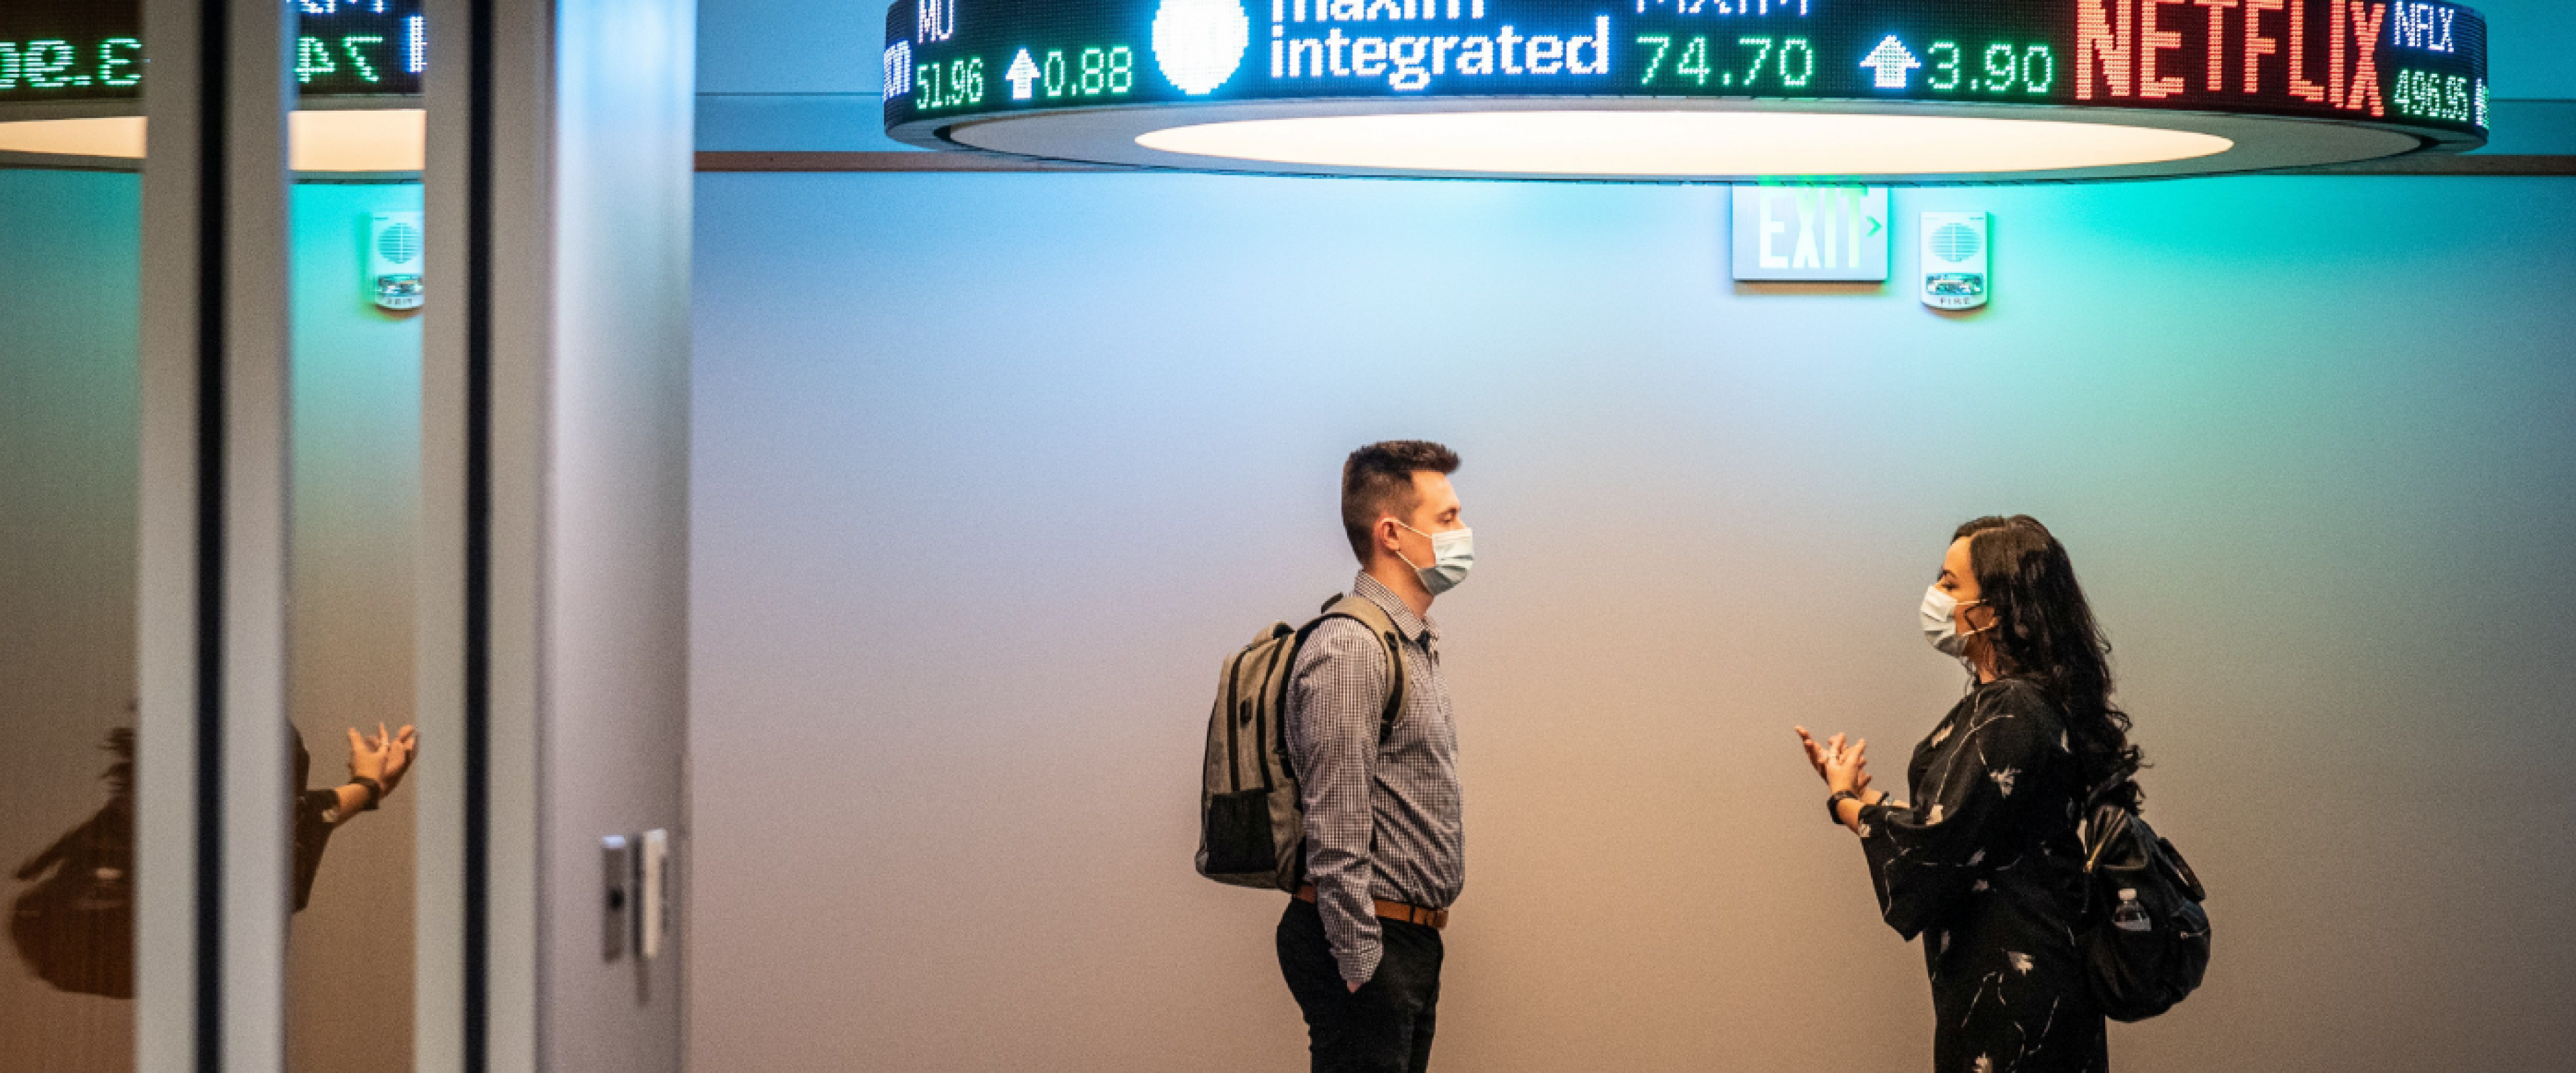 Two masked students standing in hallway under stock ticker